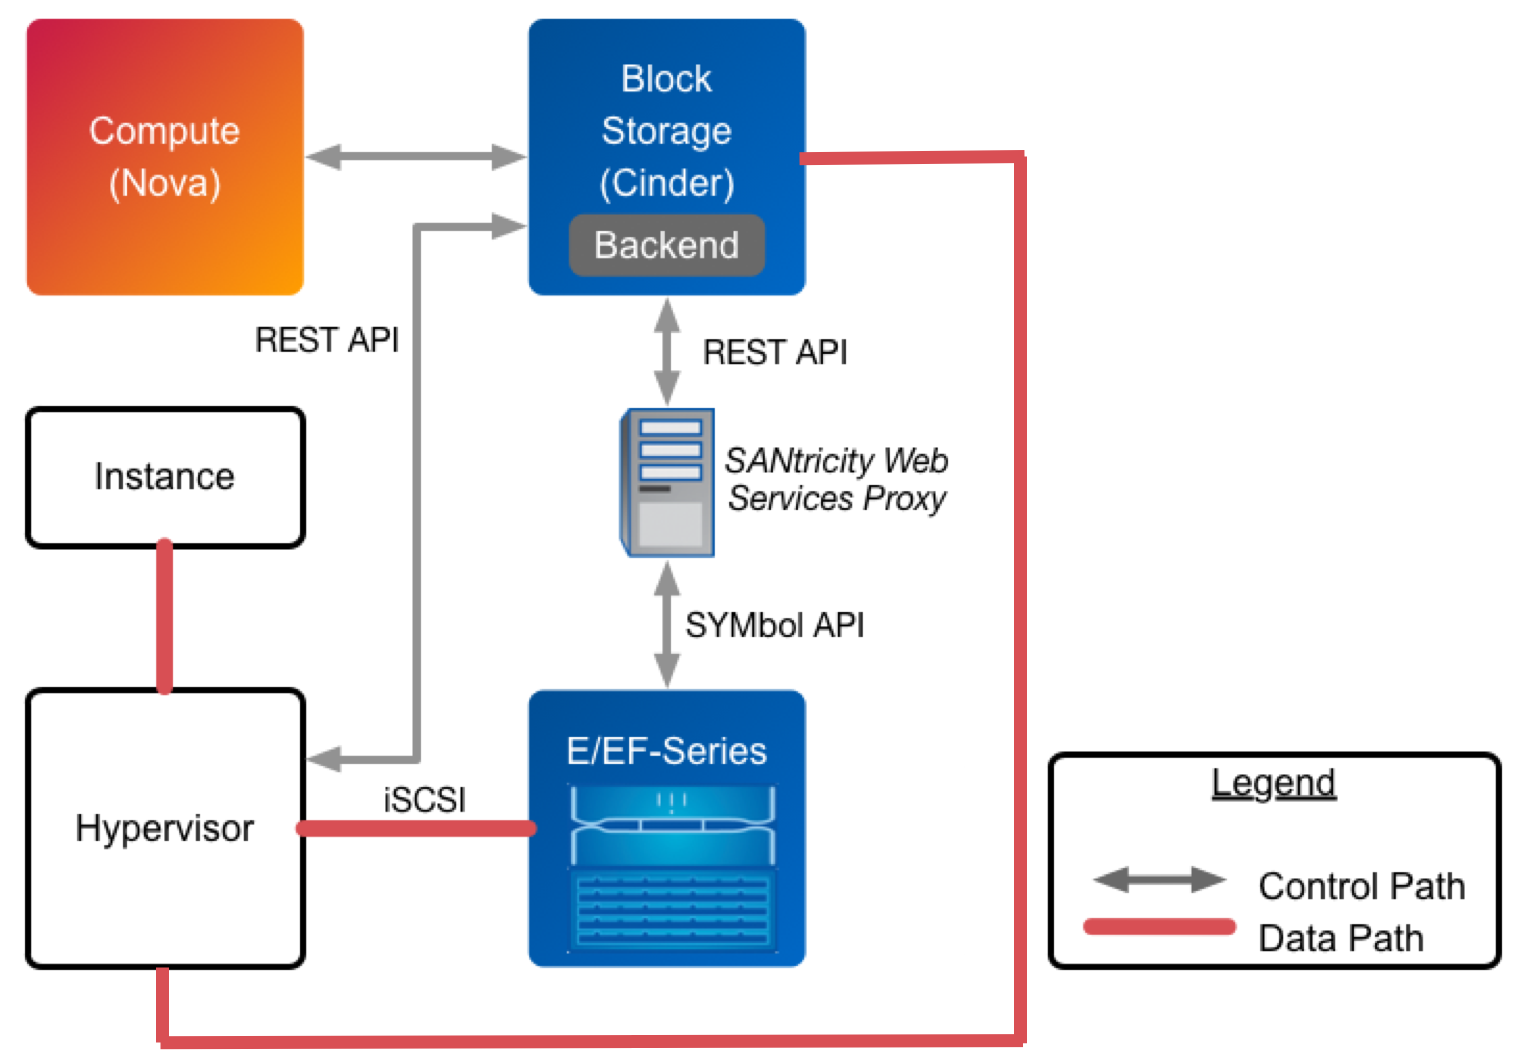 NetApp Driver for E-Series with iSCSI - OpenStack Deployment